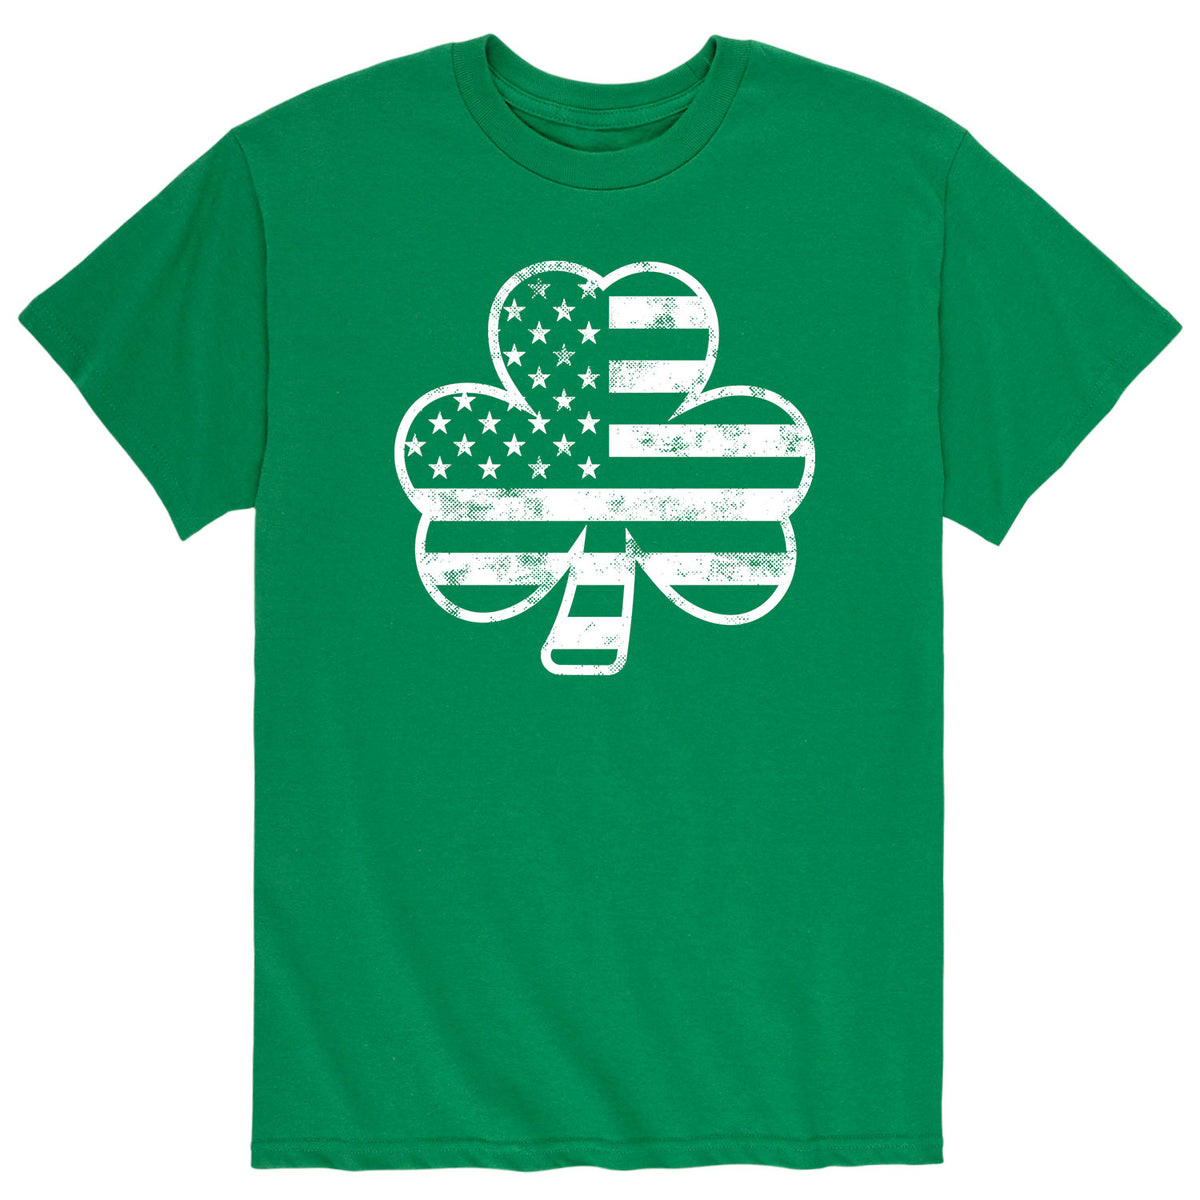 Shamrock Flag - Men's Short Sleeve T-Shirt